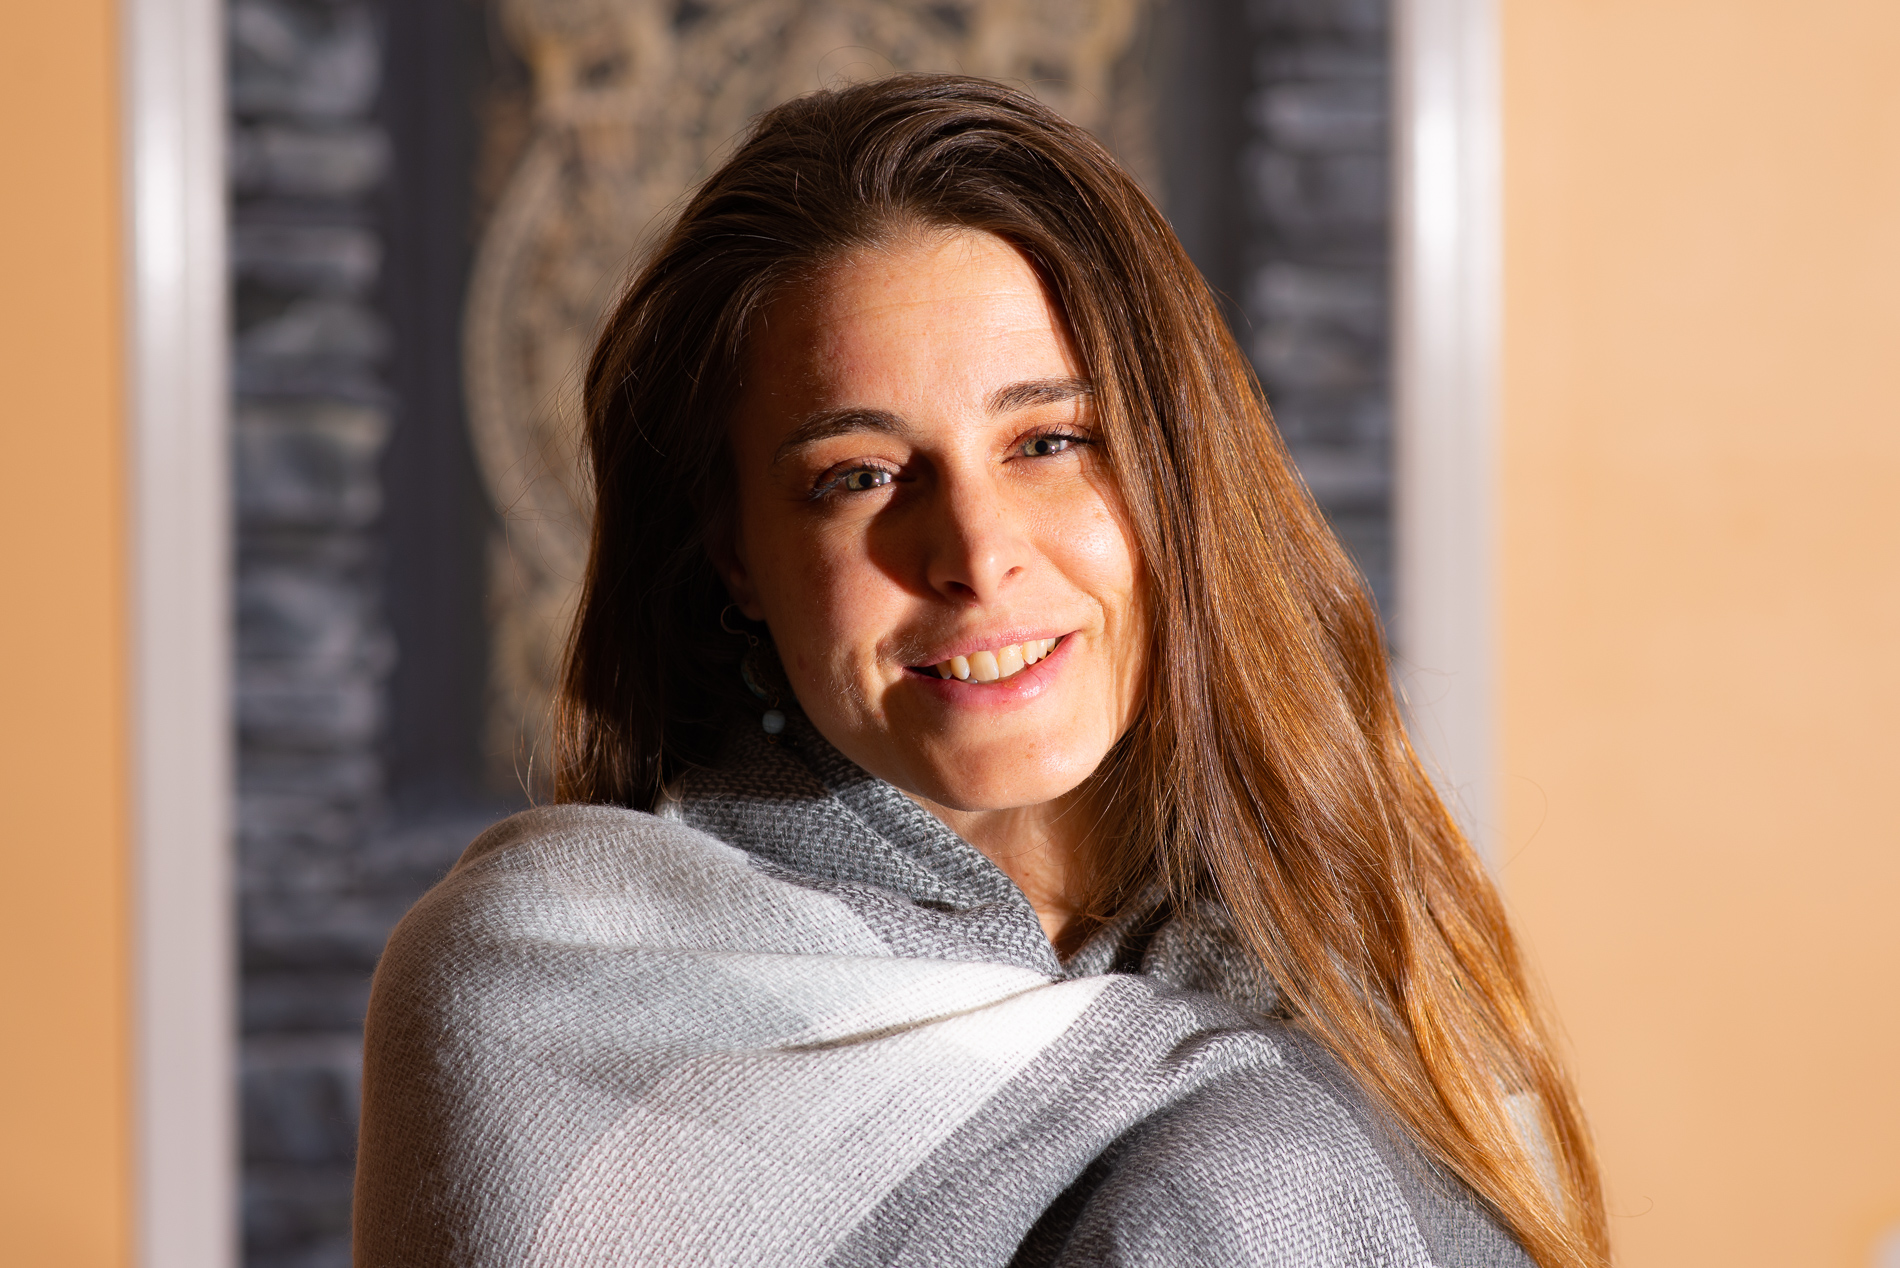 Michelle Dorer: (RYT200) - Director of the Ashtanga Yoga Center in the Outer Banks which opened in 2005. In January 2019 Michelle decided to close her long standing and beloved space to join the Co-operative offering her freedom to reorganize her teaching career. She began practicing yoga in 2002 when she was a student at the University of Virginia. She was happy to meet her teacher Tim Miller in Charlottesville, VA in April 2004. She has and continues to make annual trips to Encinitas, CA, attends his workshops and conferences worldwide, completed his First Series Teacher Training, Second Series Teacher Training, and Third Series Teacher Training. Tim has taught her well into the Fourth Series of the Ashtanga Yoga sequences. Michelle had the opportunity to practice with Pattabhi Jois at the tale end of his life and has also studied with several other prominent Ashtanga Yoga teachers within the Lineage, has been practicing Ashtanga Yoga daily uninterrupted for fifteen years, has attended several workshops on various areas of spirituality such as Meditation, Chanting, Astrology, Ayurveda, studies of sacred texts, and has a love for lore, dancing, and gathering around Fire. She has a BA in psychology from the University of Virginia. It is her intention as a teacher to help facilitate the continuation of her students' physical practice while nourishing their spiritual and emotional growth symbiotically. She is interested in the global movement of Awakening that is currently happening and supports any holistic practice that facilitates this process. For more information please visit Michelle's website at; http://www.ashtangayogaobx.com/